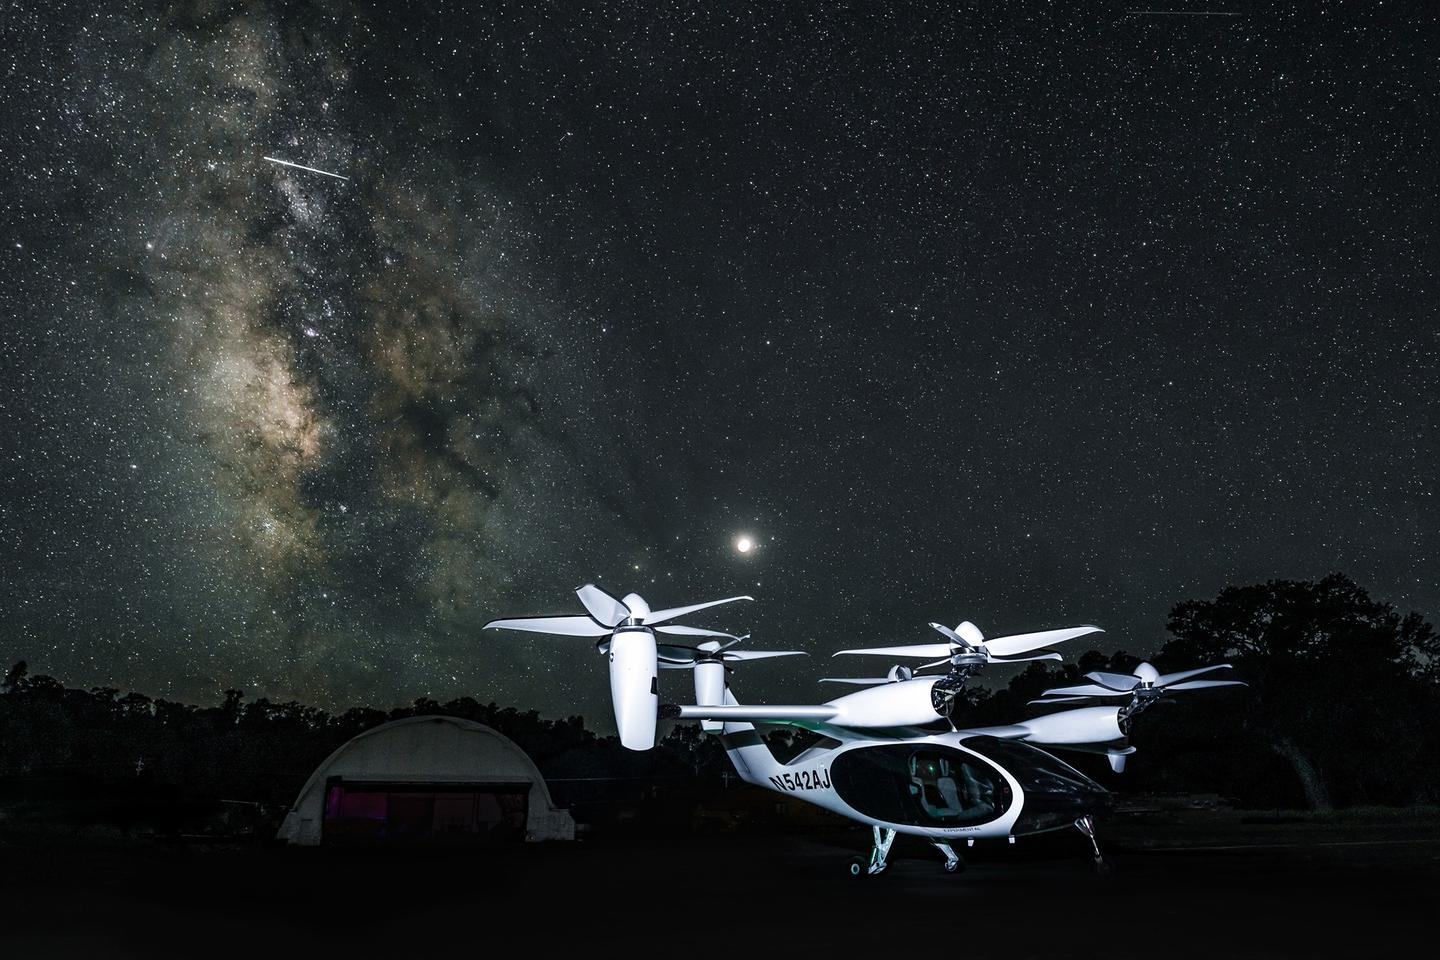 Under the stars: Joby's five-seat eVTOL aircraft is at the vanguard of a quiet, clean urban mobility transformation